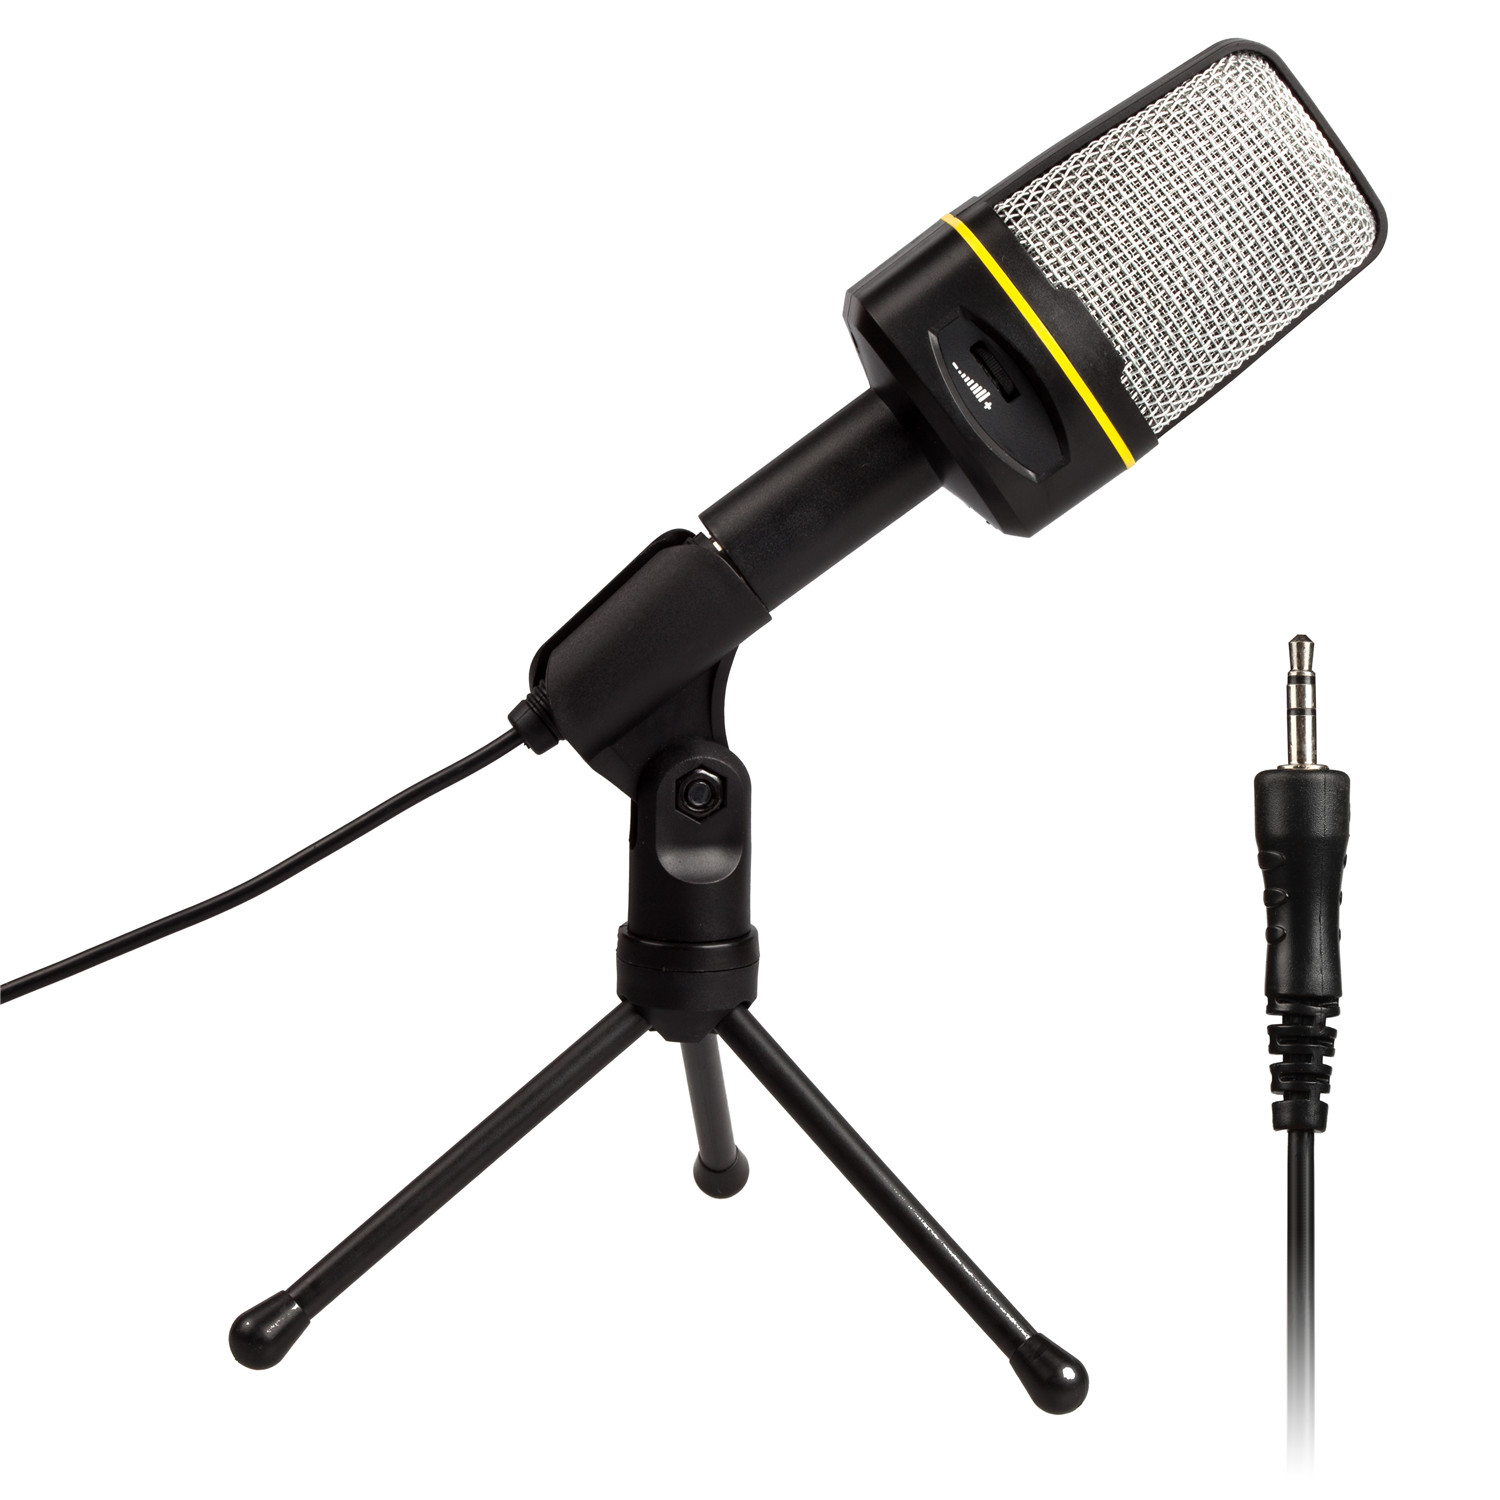 AGPTek V01B Professional 3.5mm Condenser Recording Microphone,with USB Sound Card and 180 Degree Rotatable Tripod Support,Black